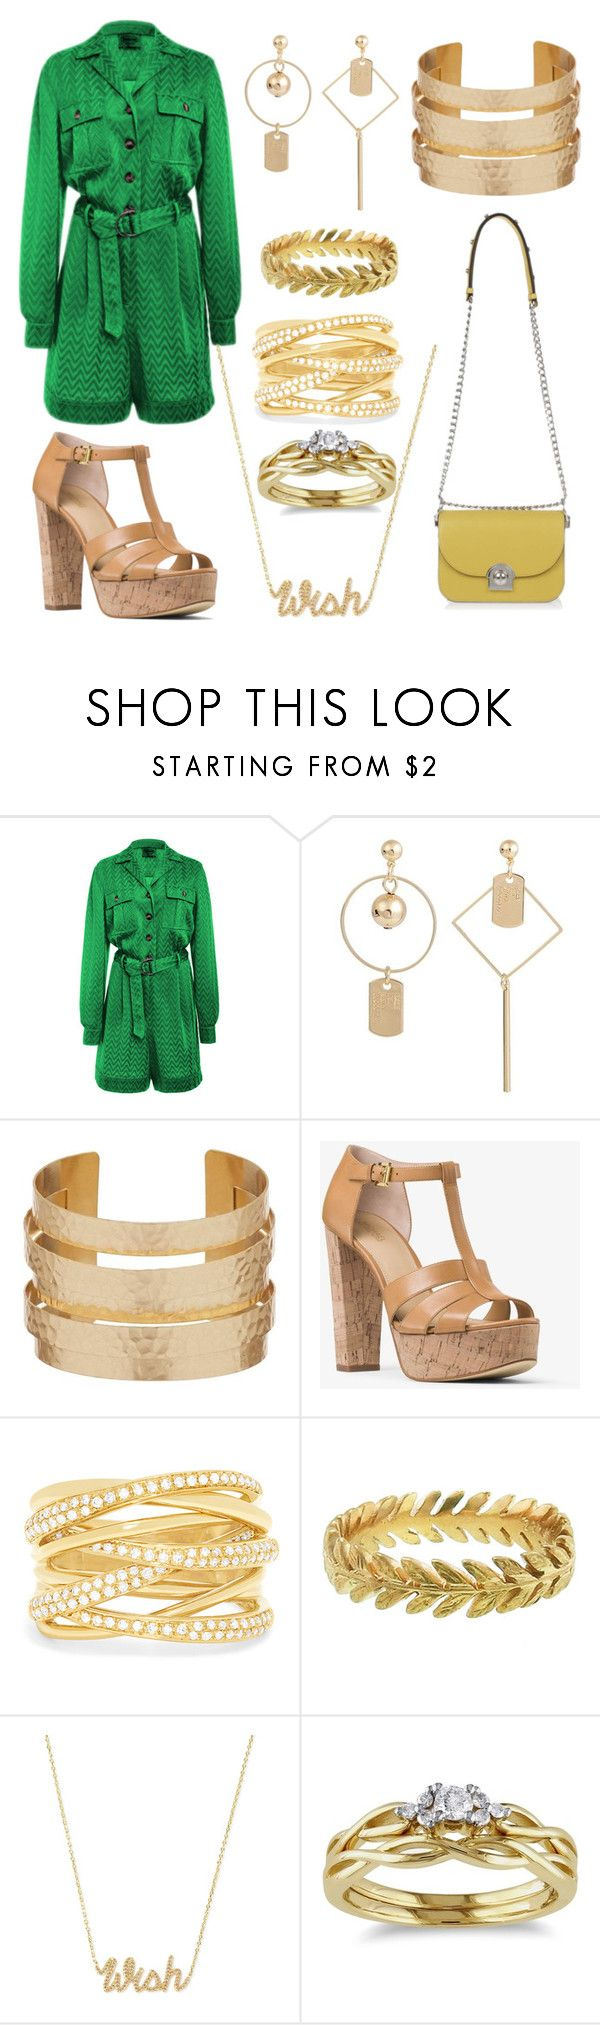 """""""She looks so perfect"""" by the-game-is-something ❤ liked on Polyvore featuring MICHAEL Michael Kors, Effy Jewelry, Cathy Waterman, Henri Bendel, Miadora and Prada"""